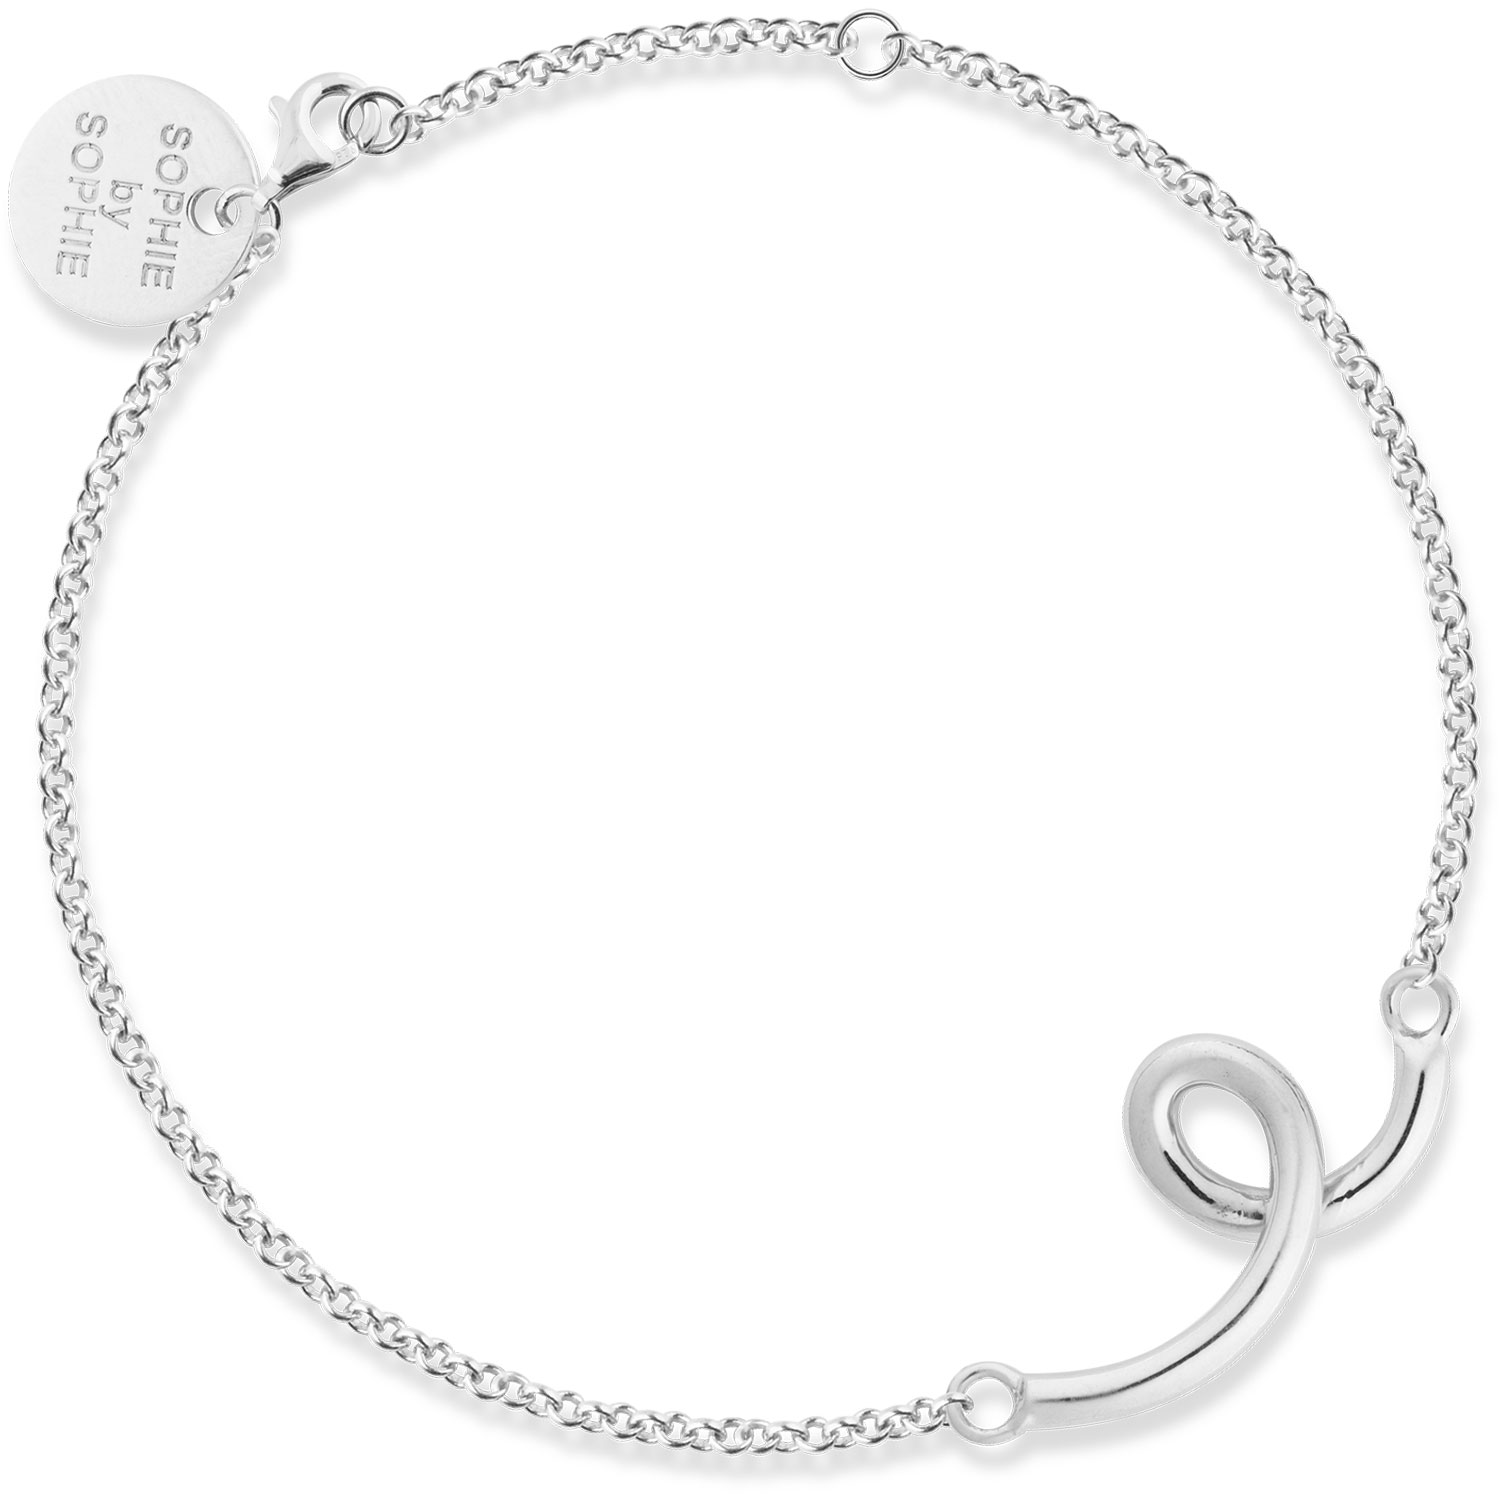 Loopy Armband, Silver